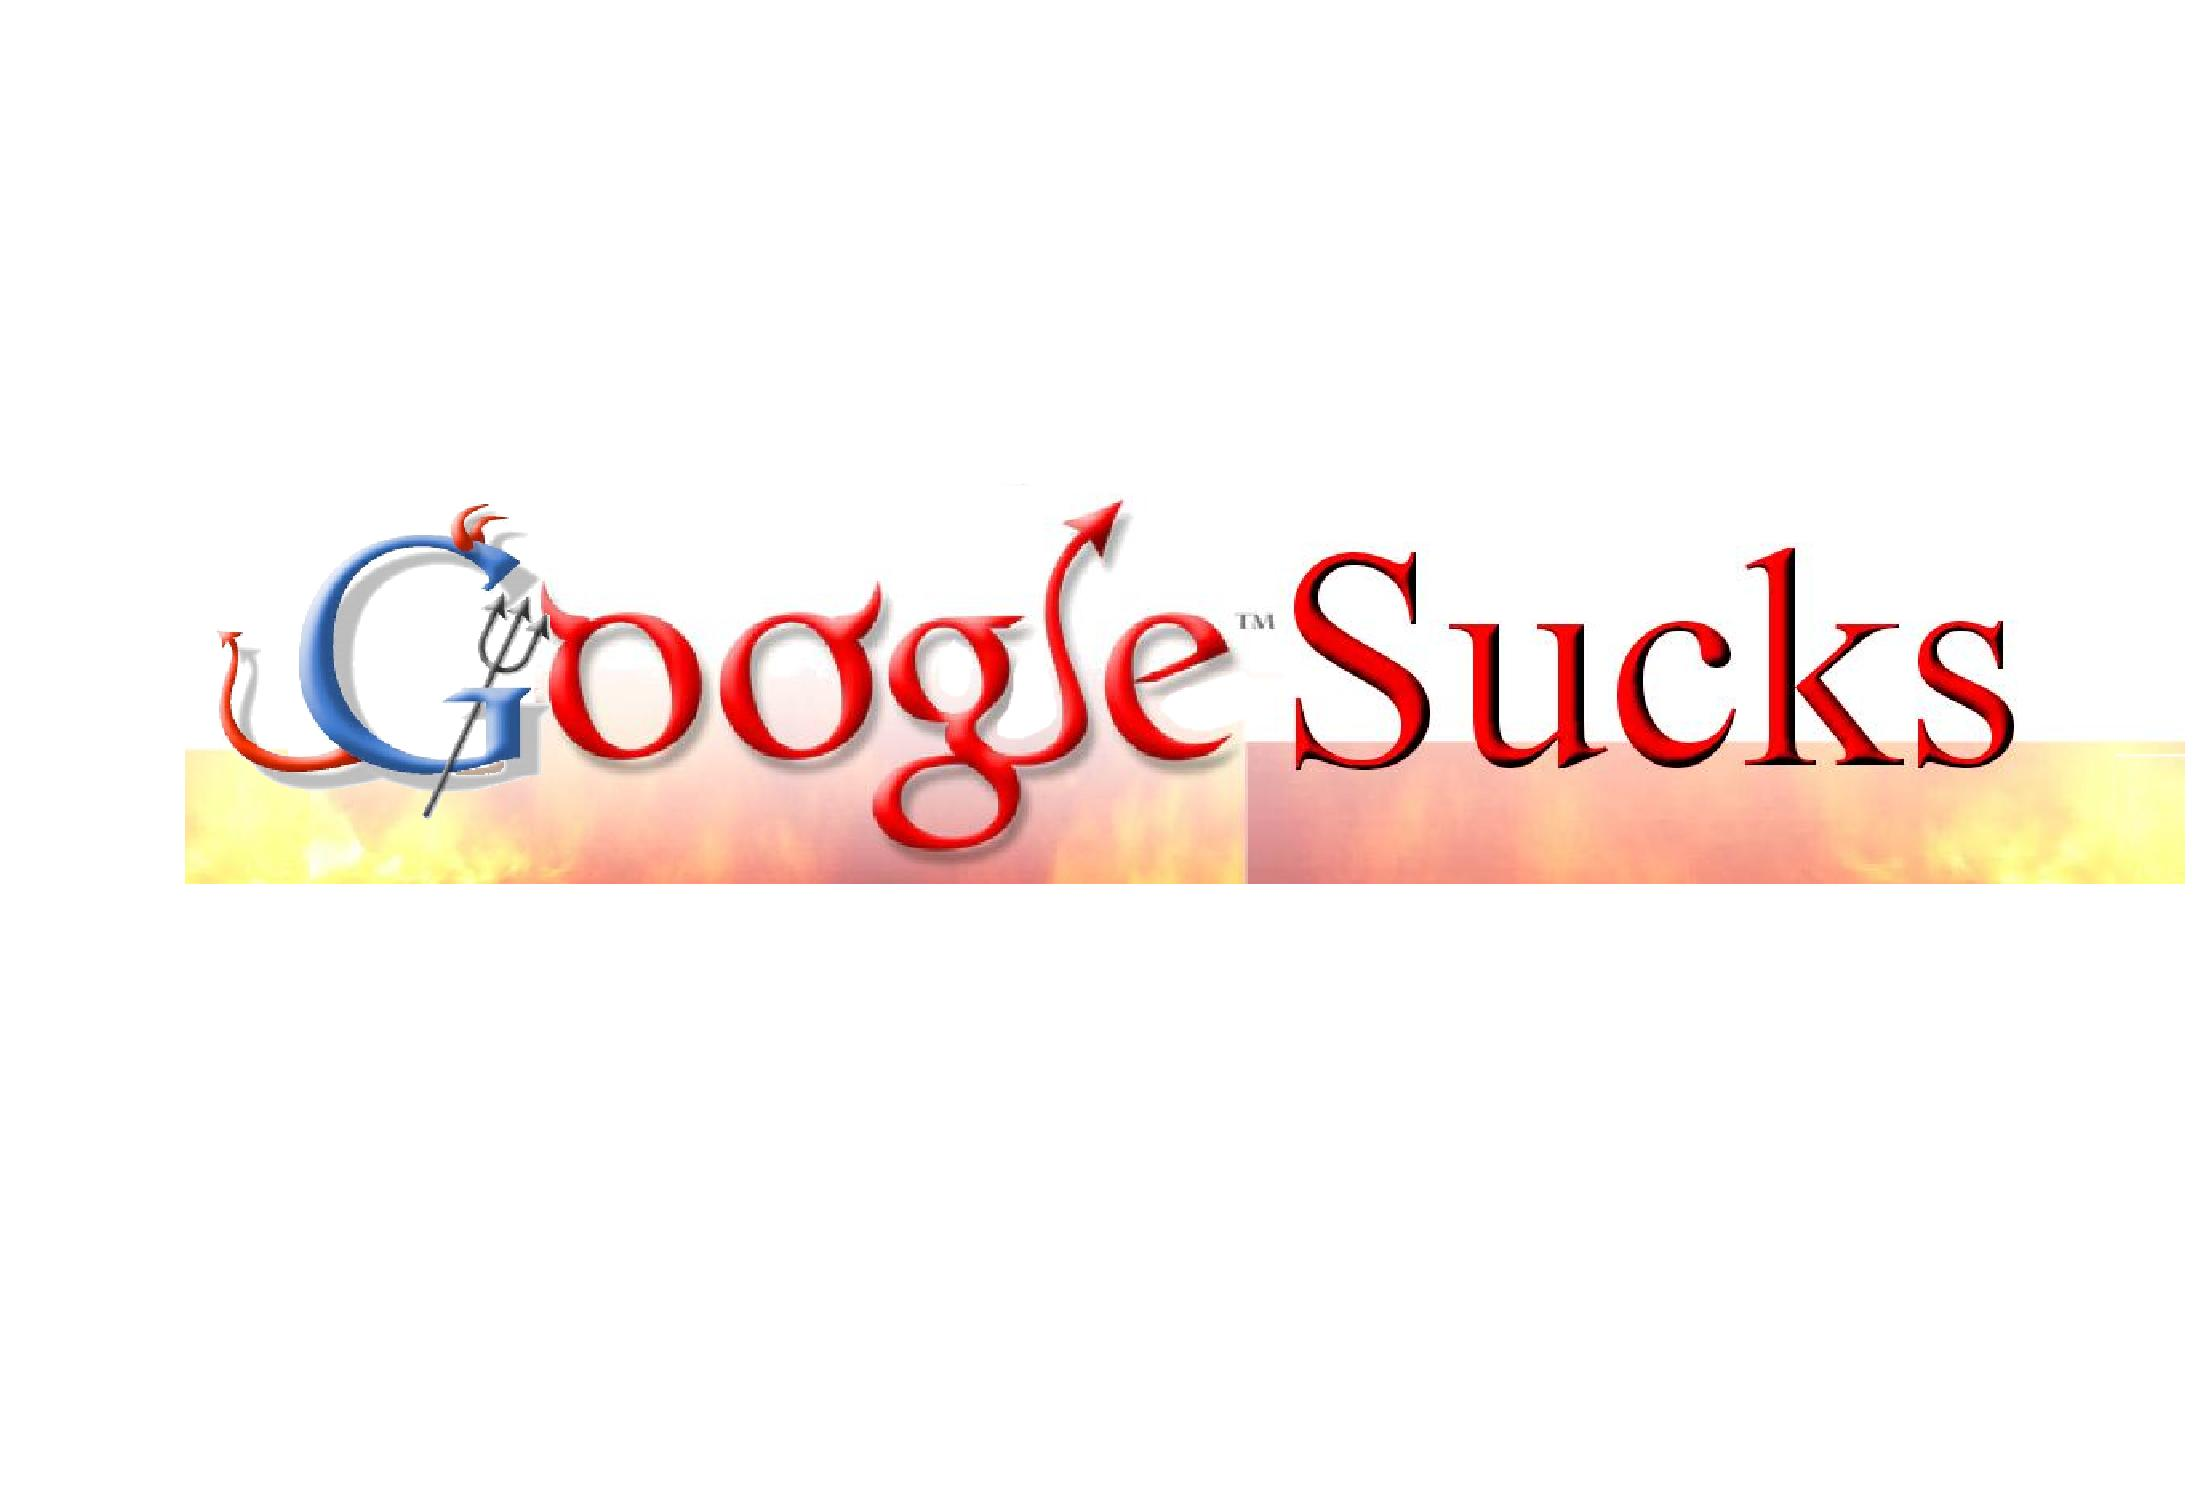 Google Sucks